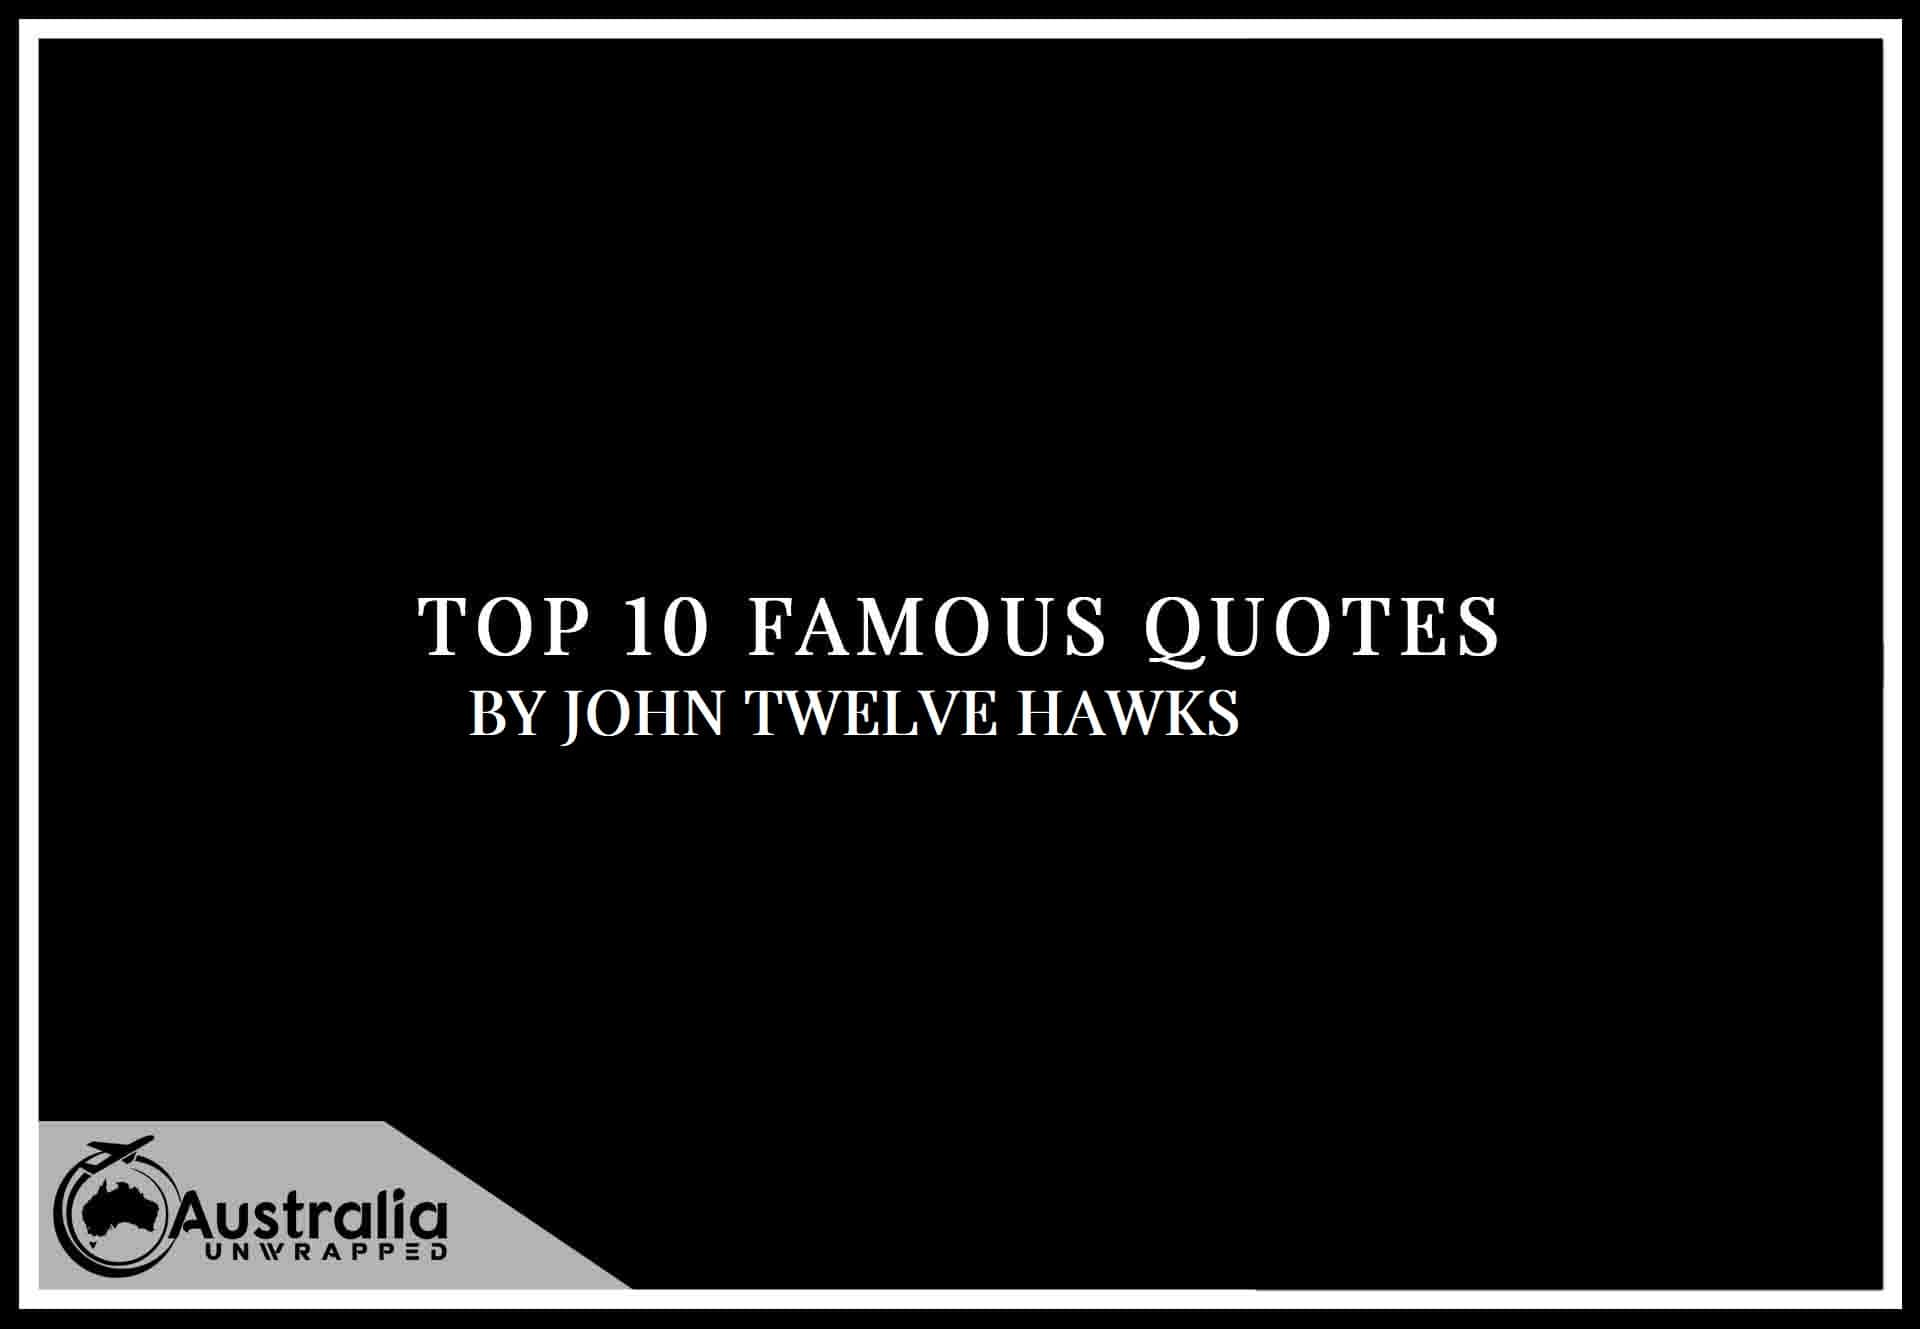 Top 10 Famous Quotes by Author John Twelve Hawks